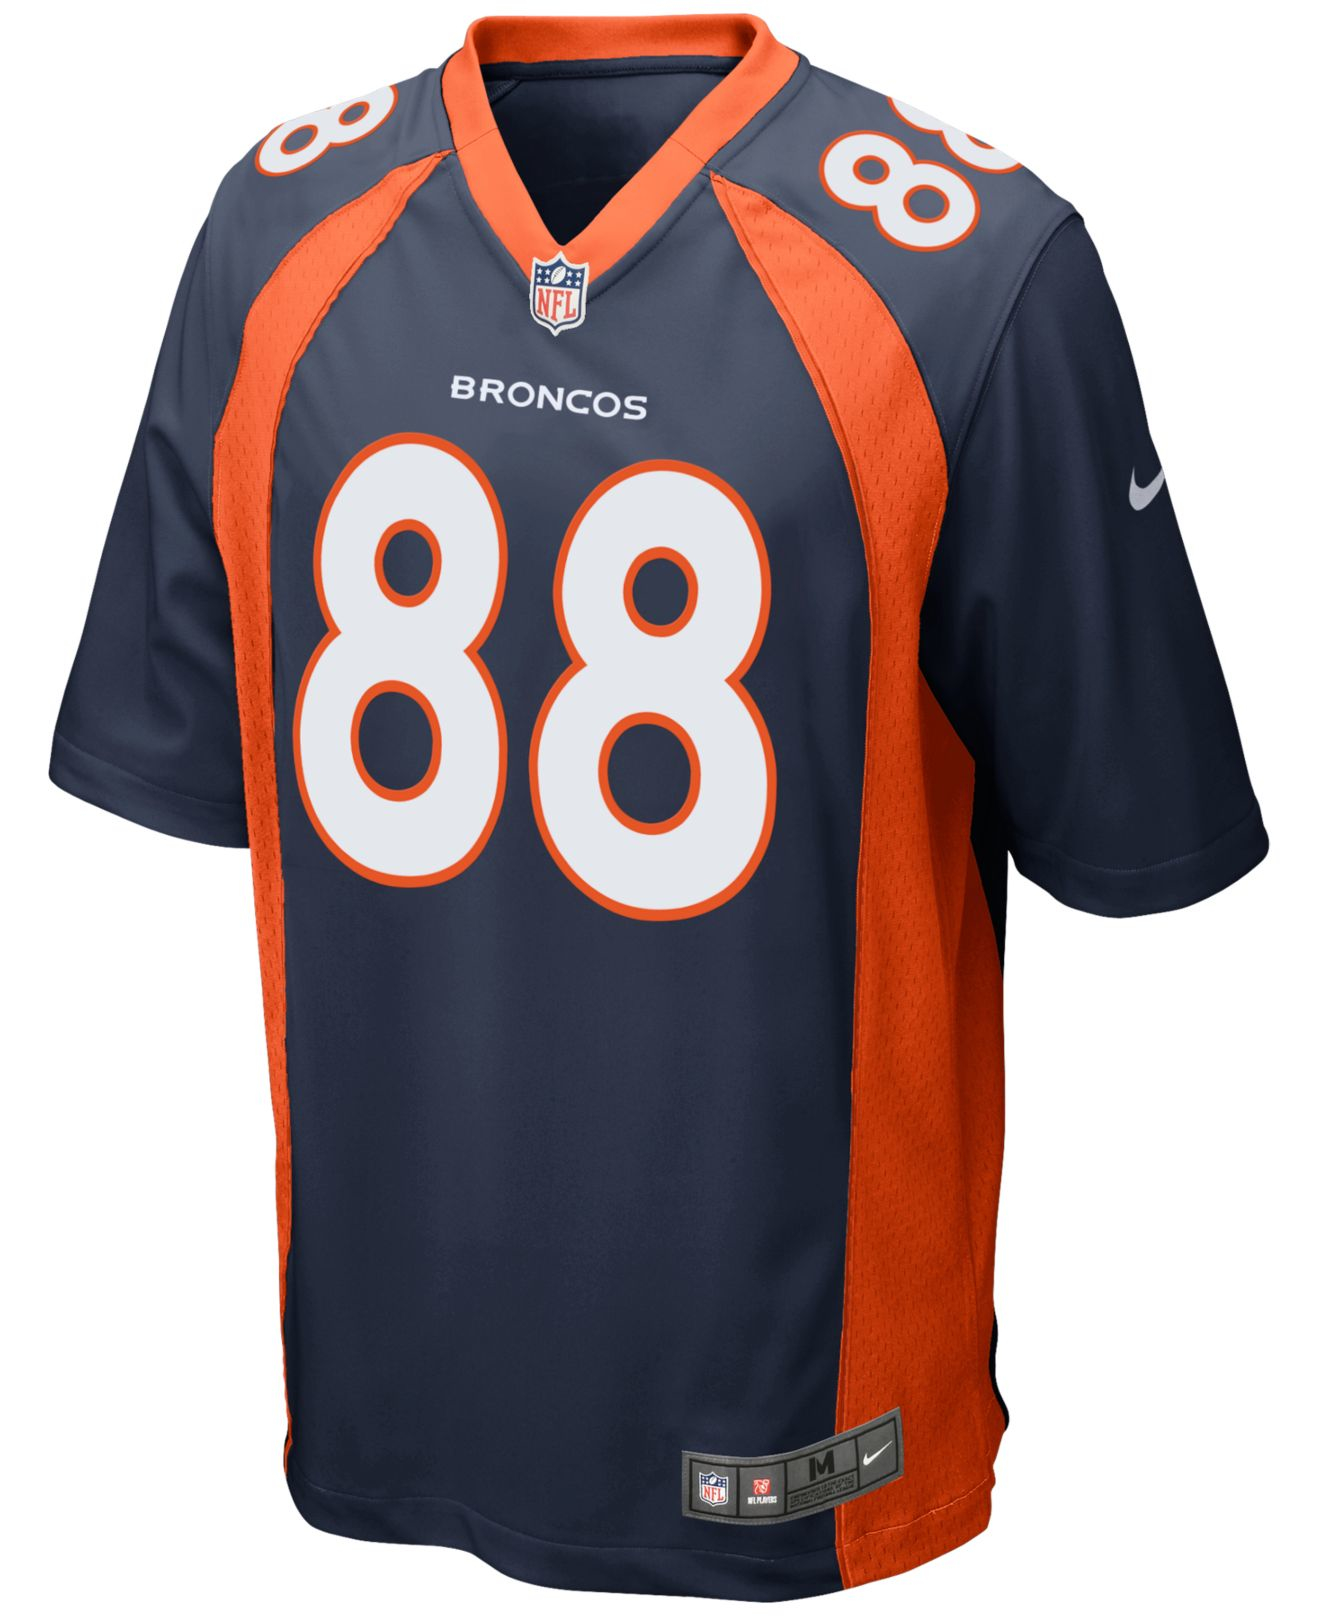 nike-navy-mens-demaryius-thomas-denver-broncos-game-jersey-blue-product-1-858878087-normal.jpeg